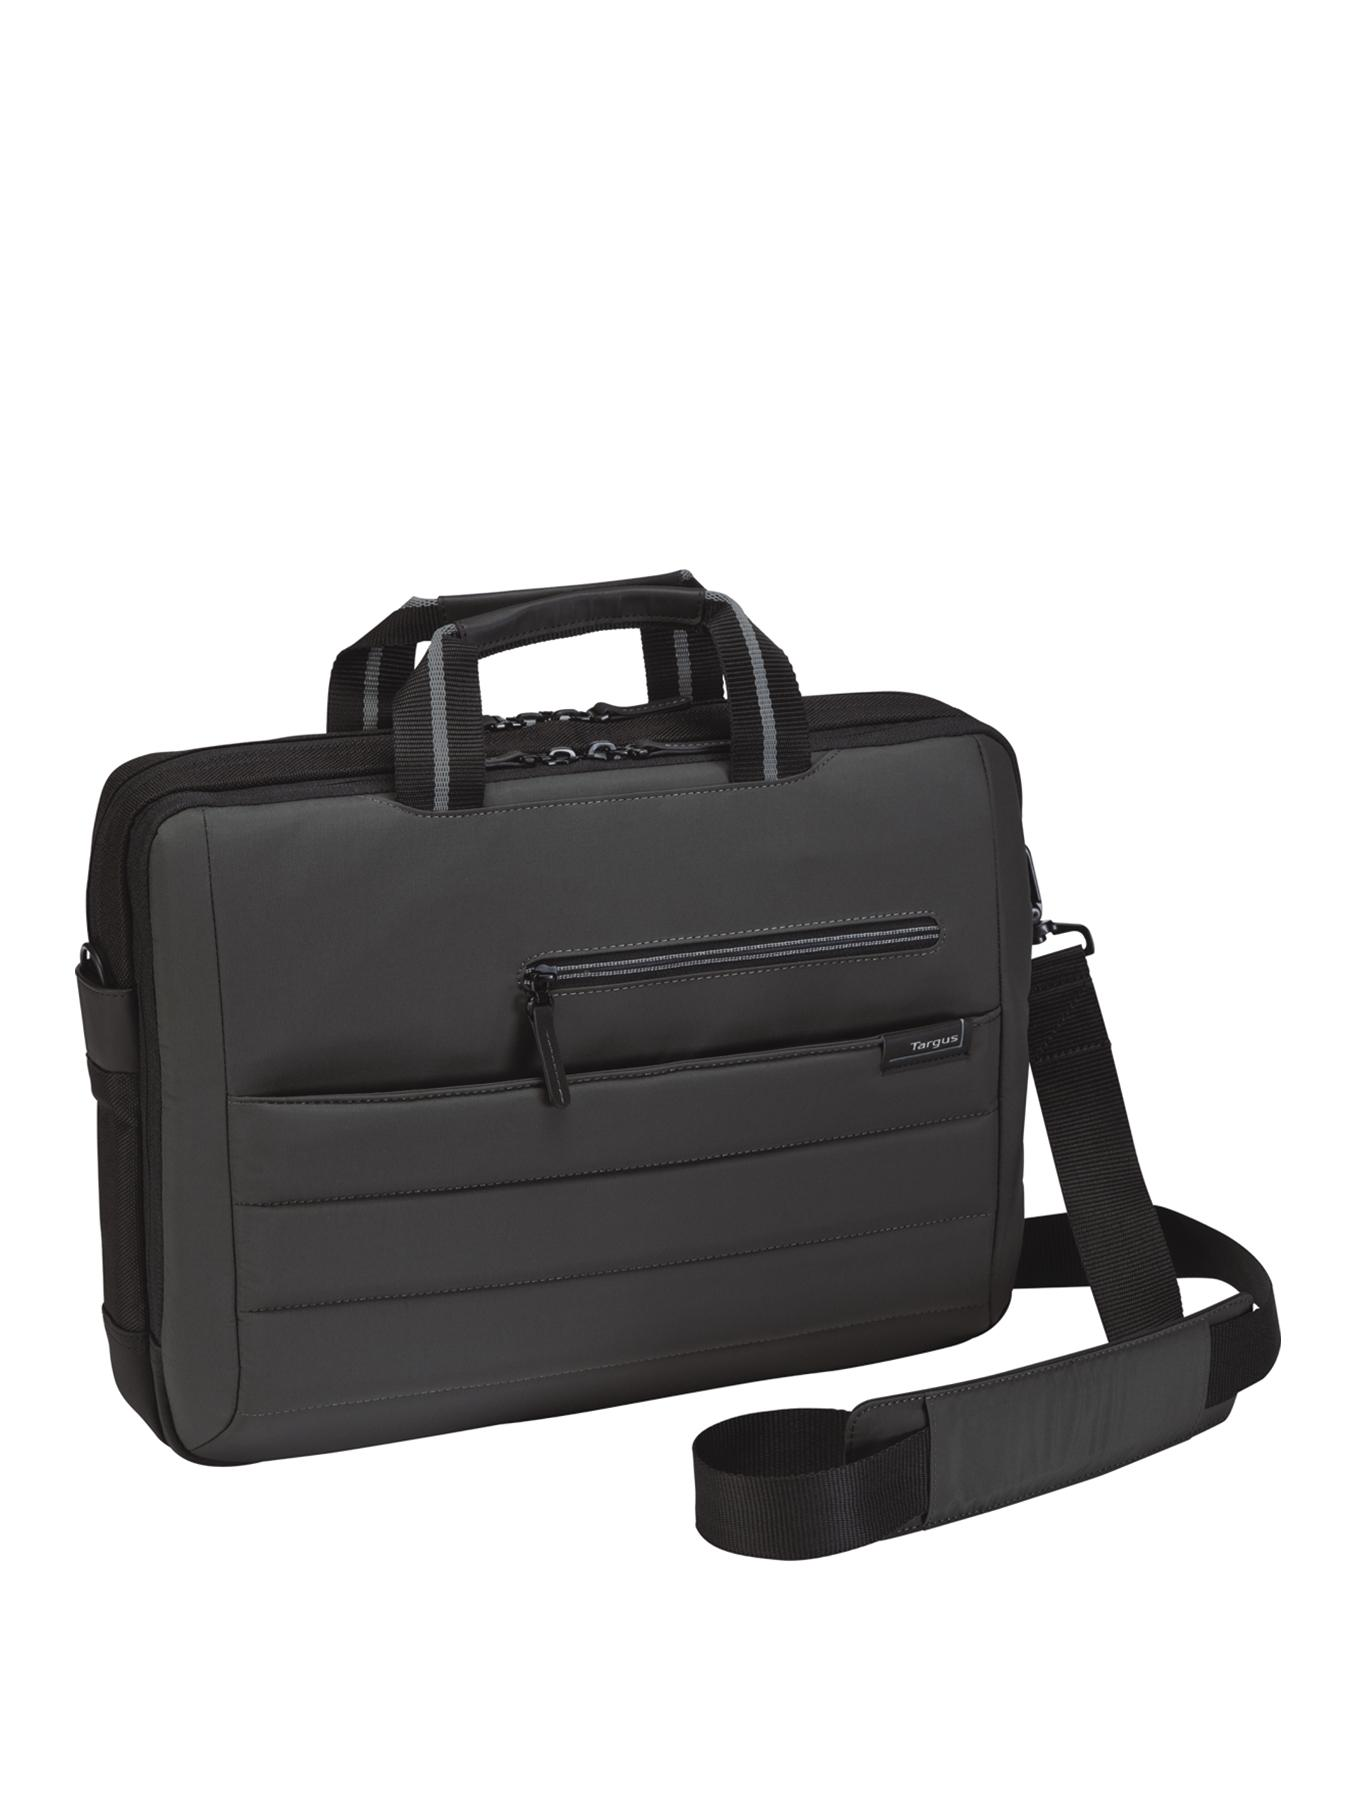 Targus Pewter 15.6 inch Topload Laptop Bag